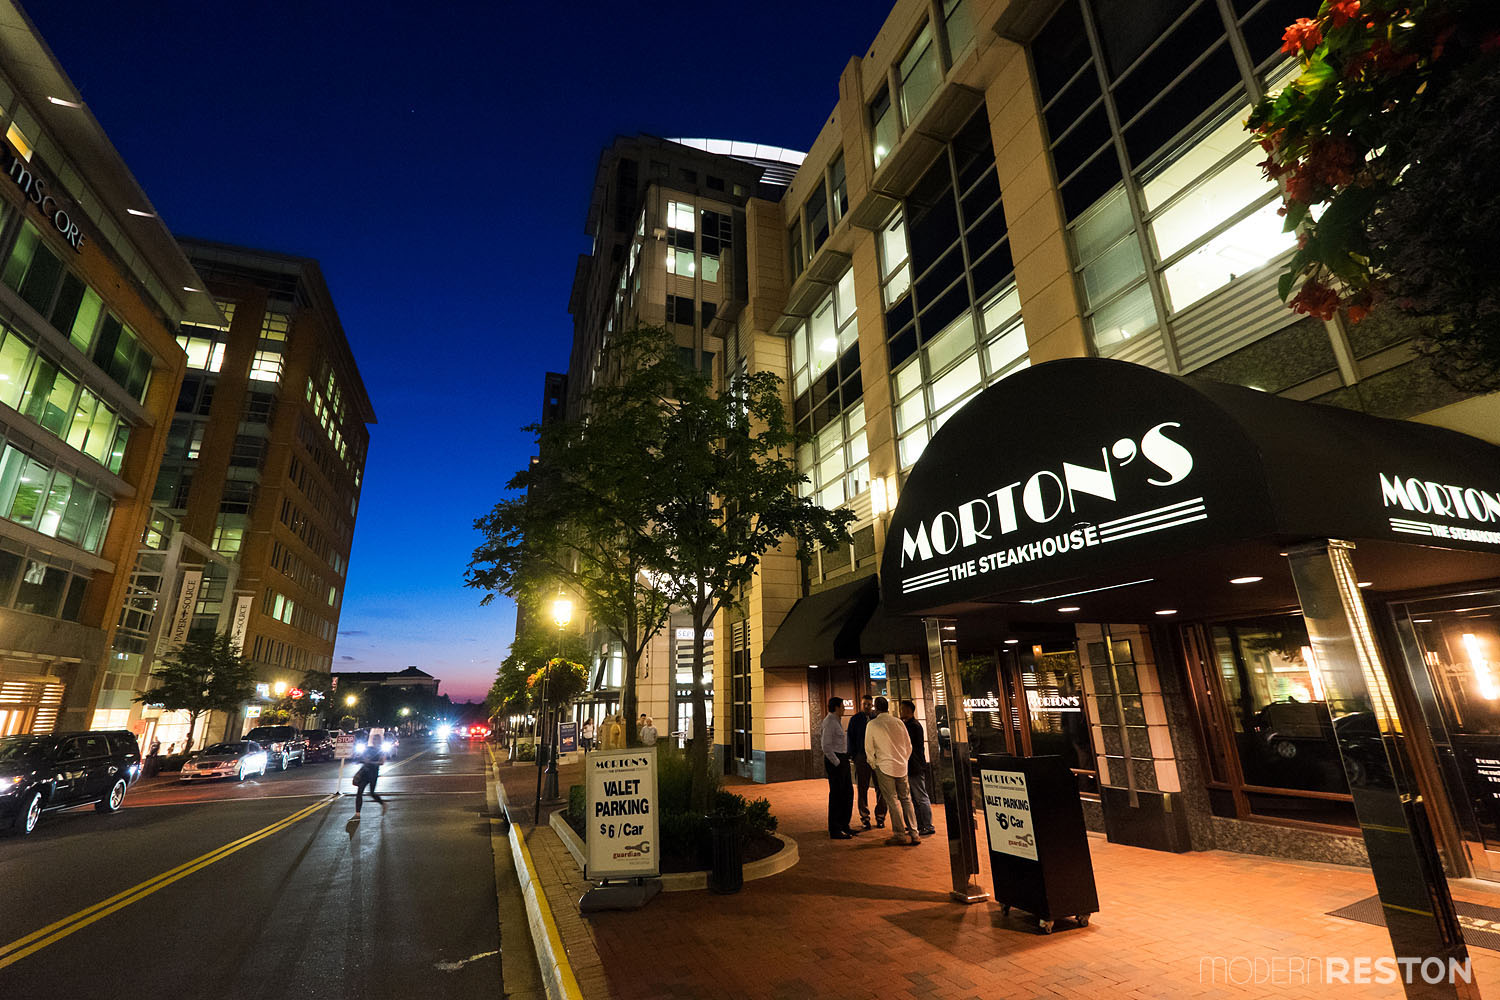 reston-in-2016-photo-by-charlotte-geary-14